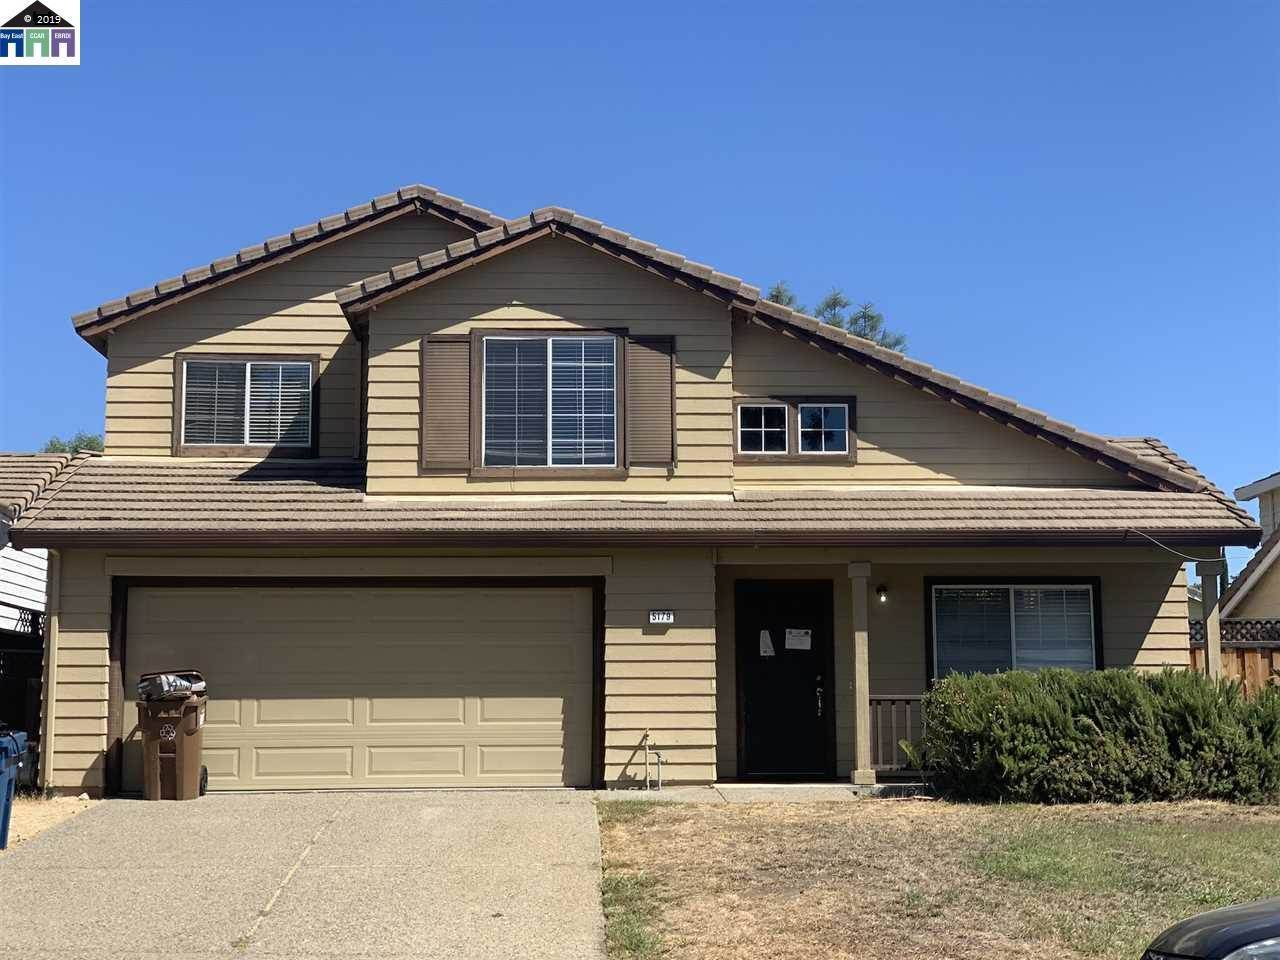 5179 Grass Valley Way, Antioch, CA 94531